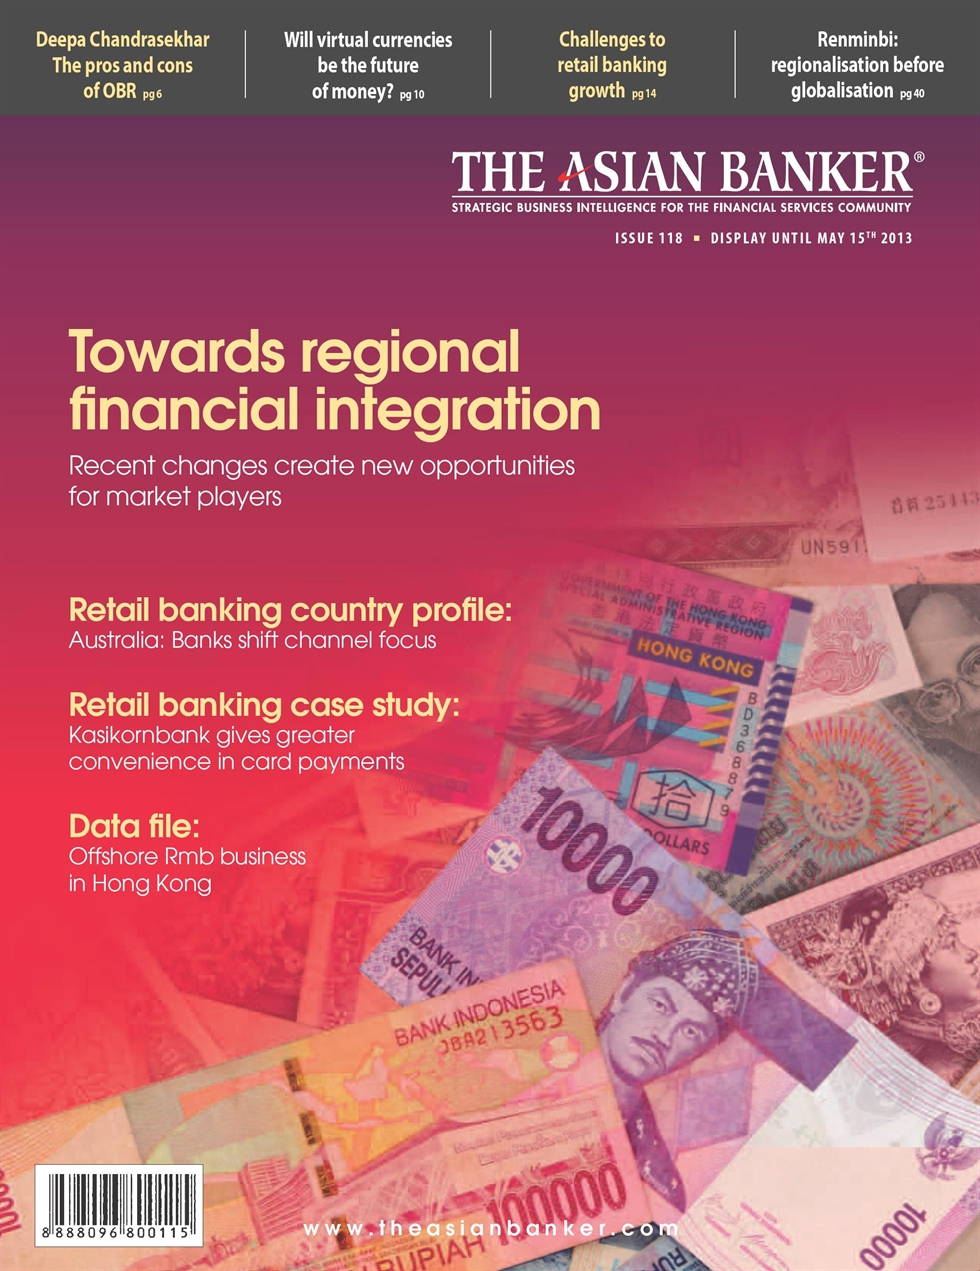 Issue 118: Towards regional financial integration